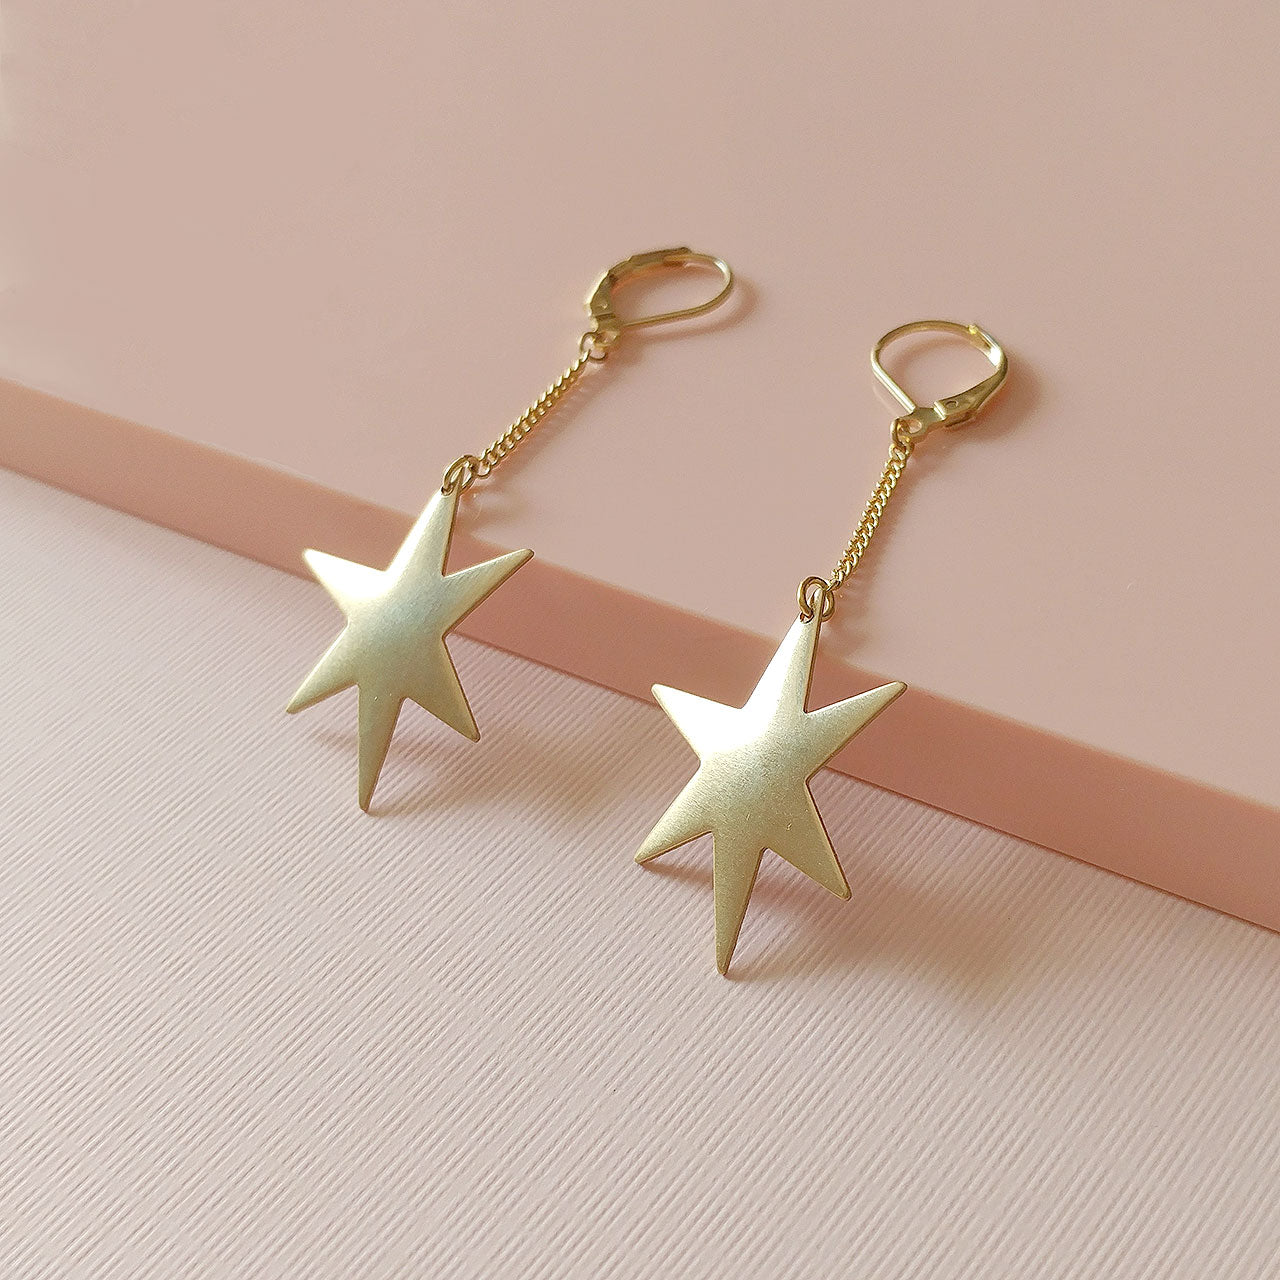 Jem Earrings (SD1321)